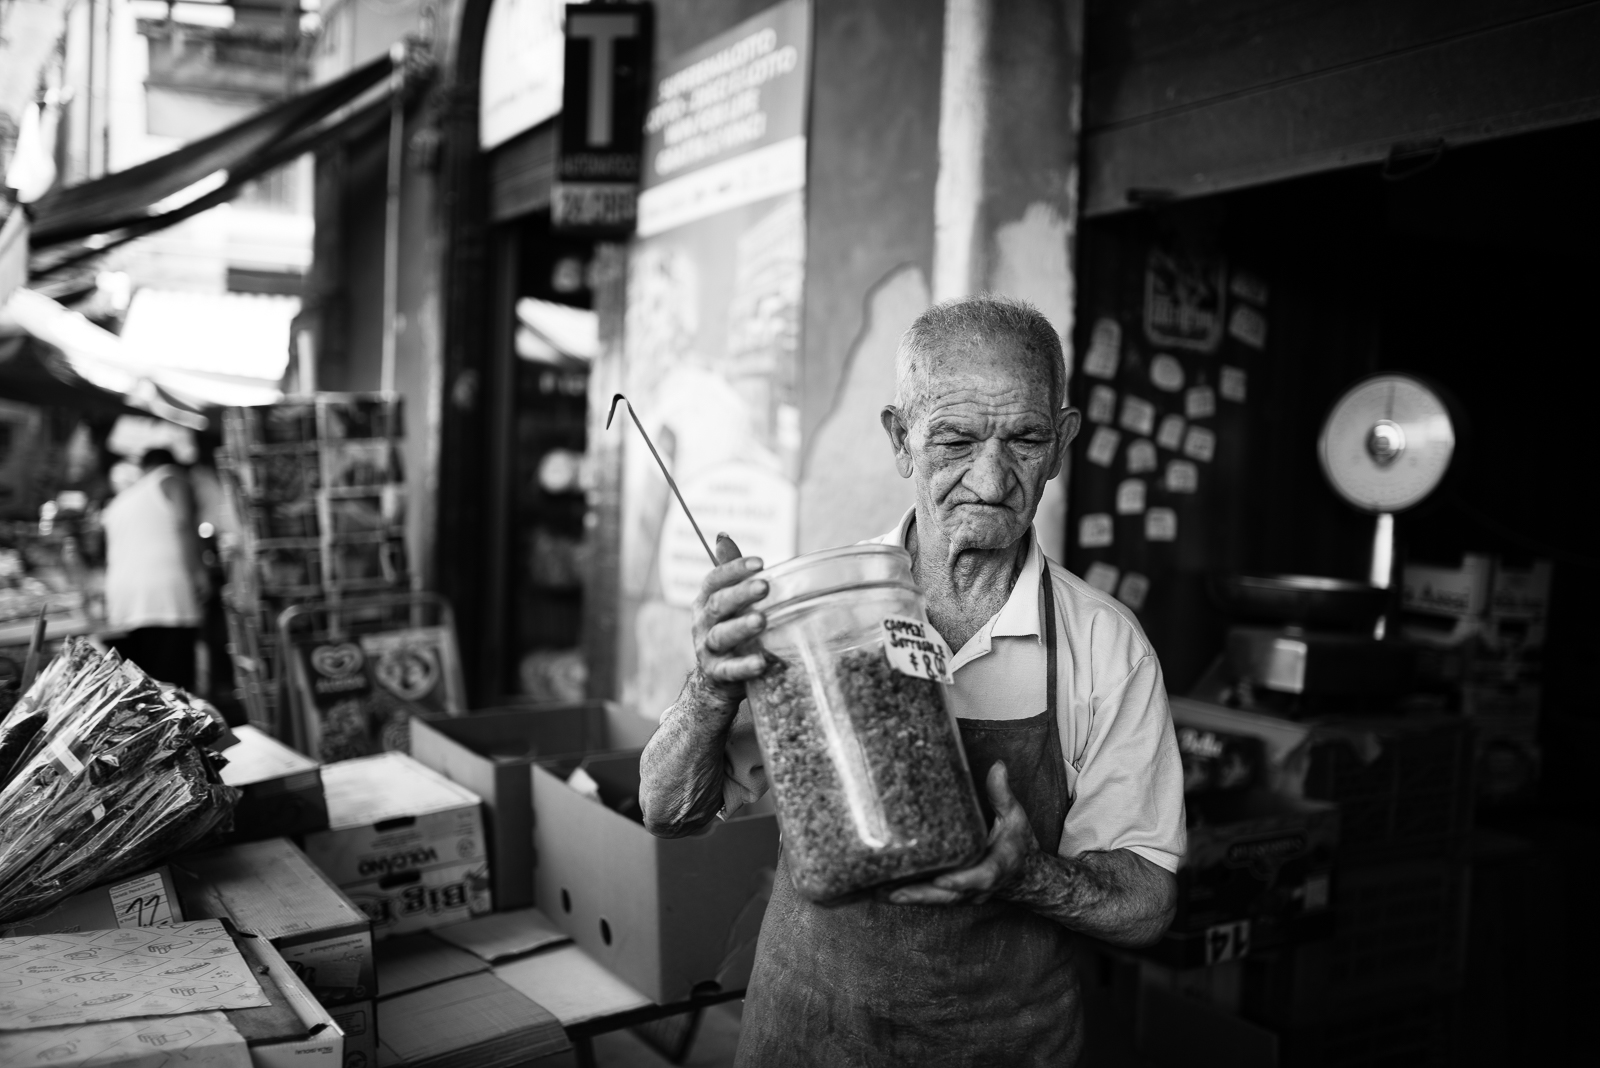 Catania local market. A man with a big capers can